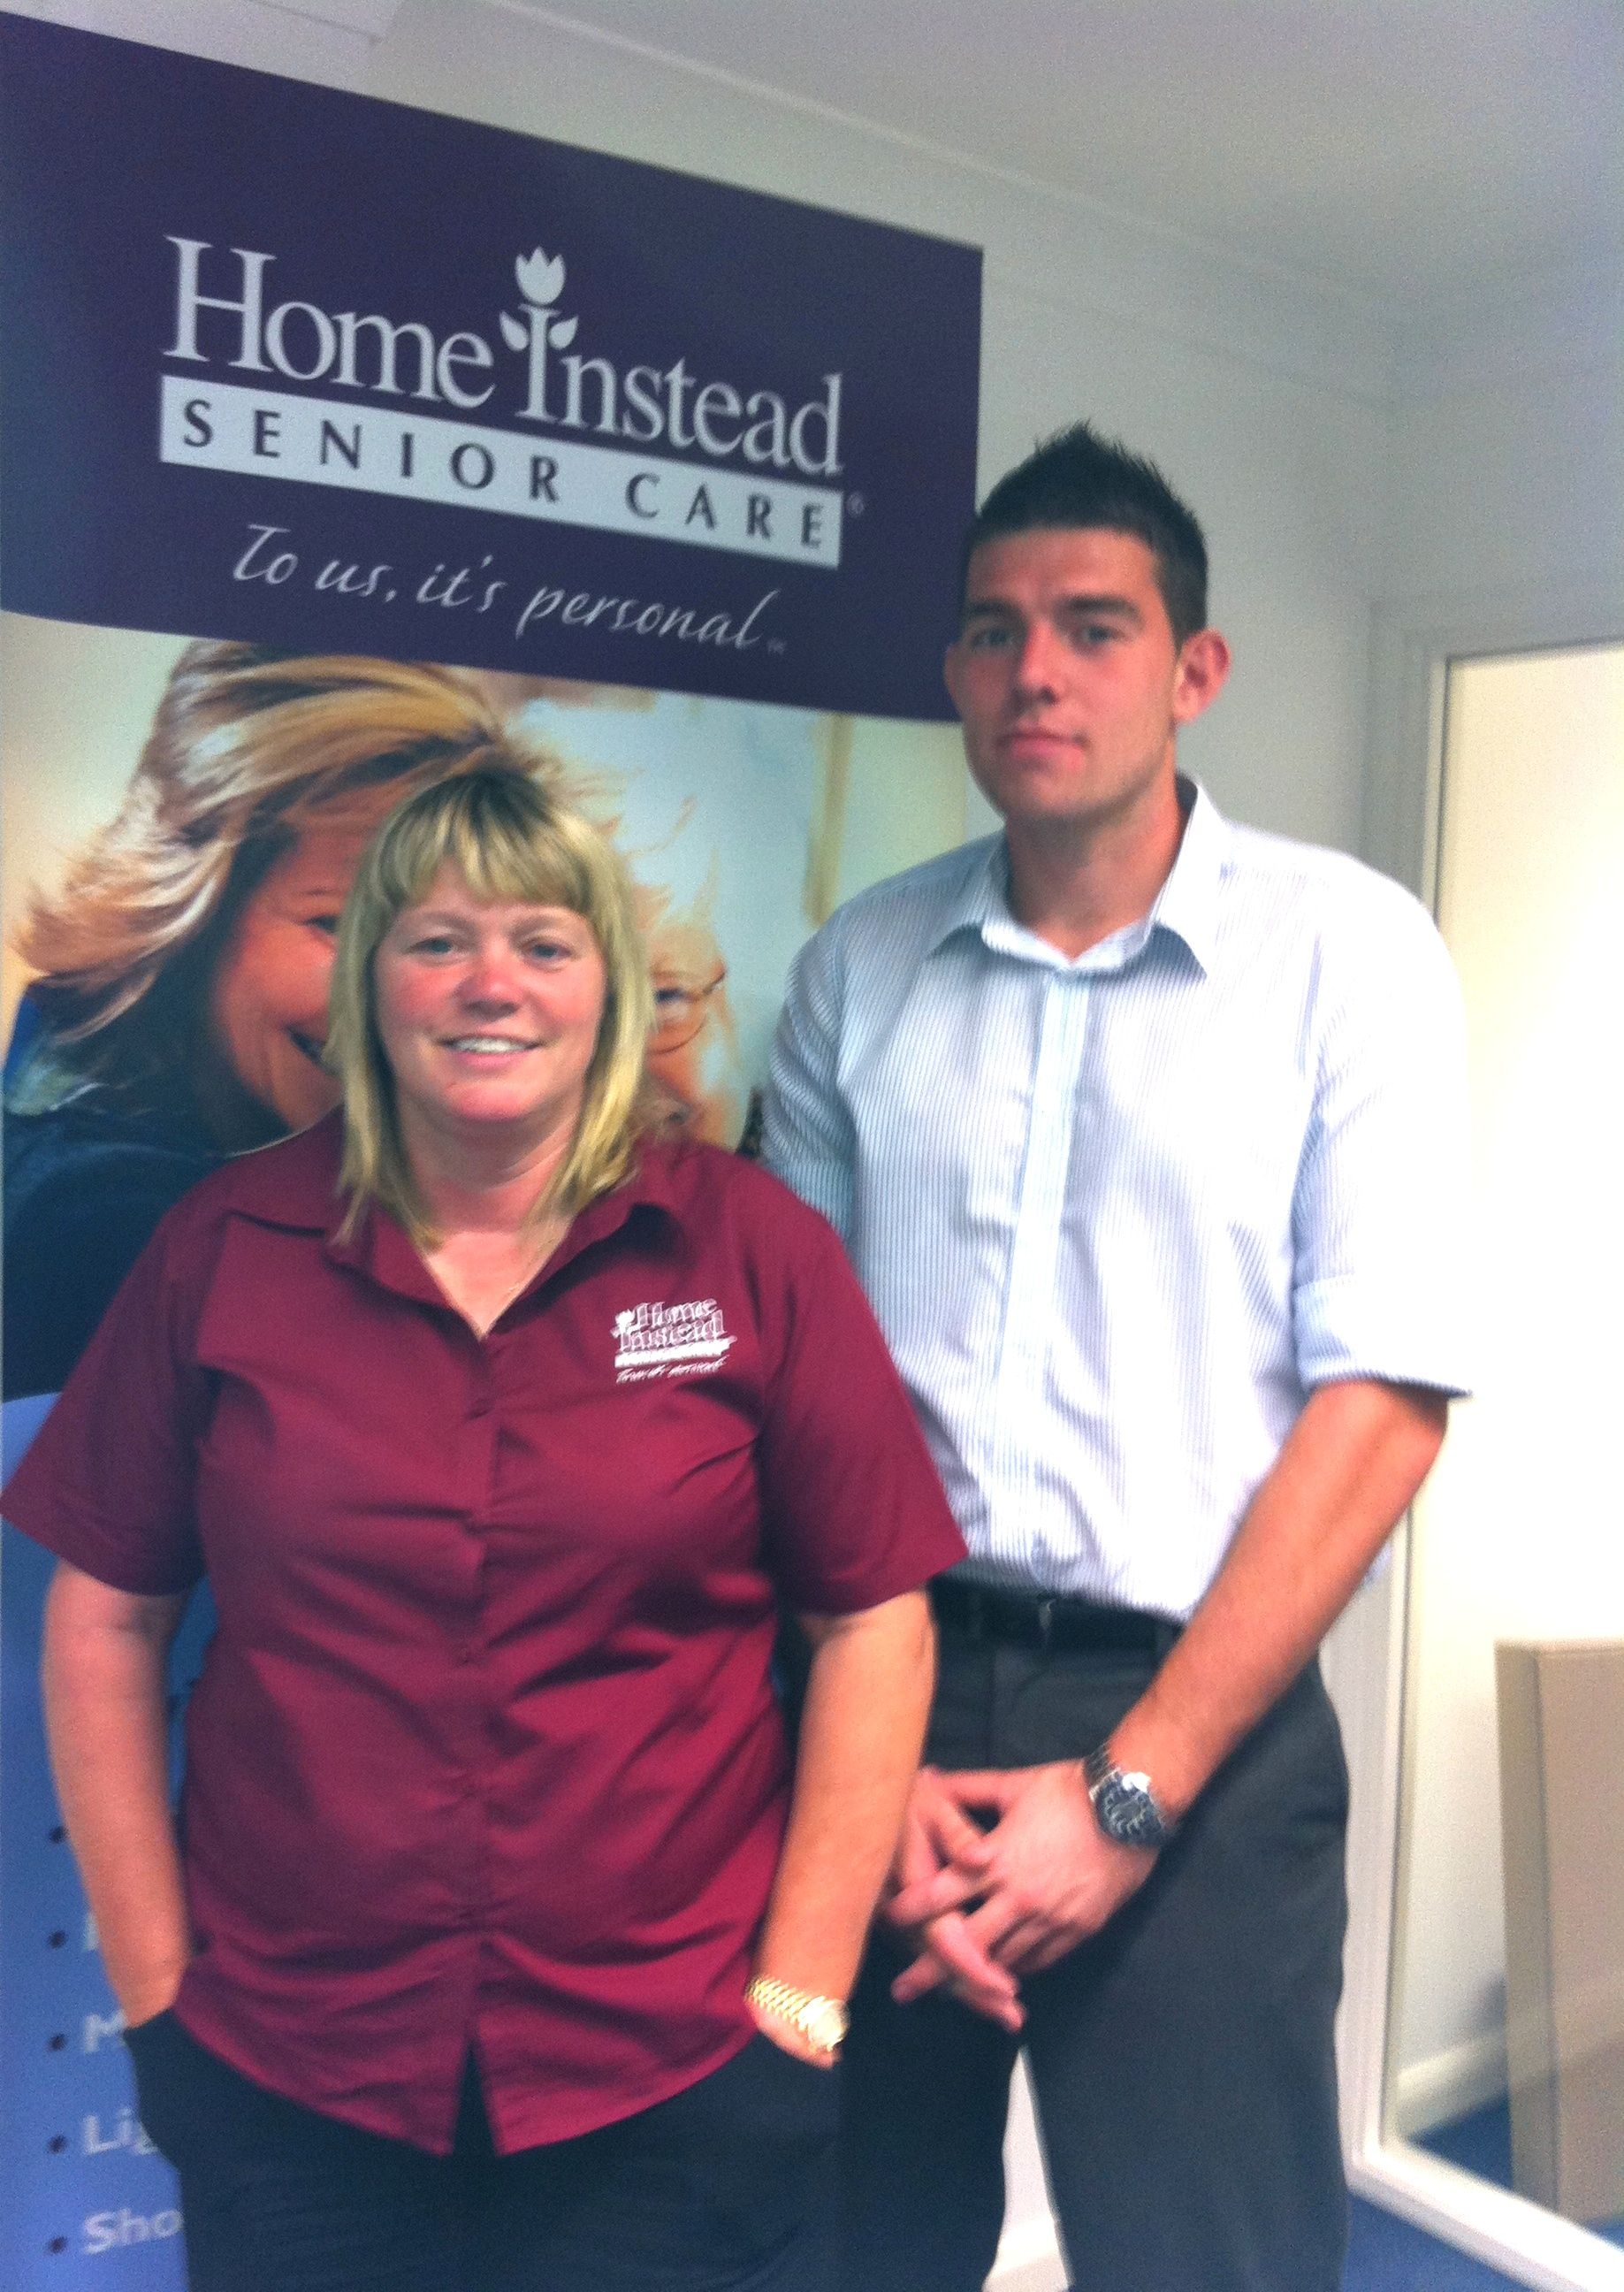 Home Instead Senior Care South Lincolnshire owner Jeanette McEwan and community service representative son Tom